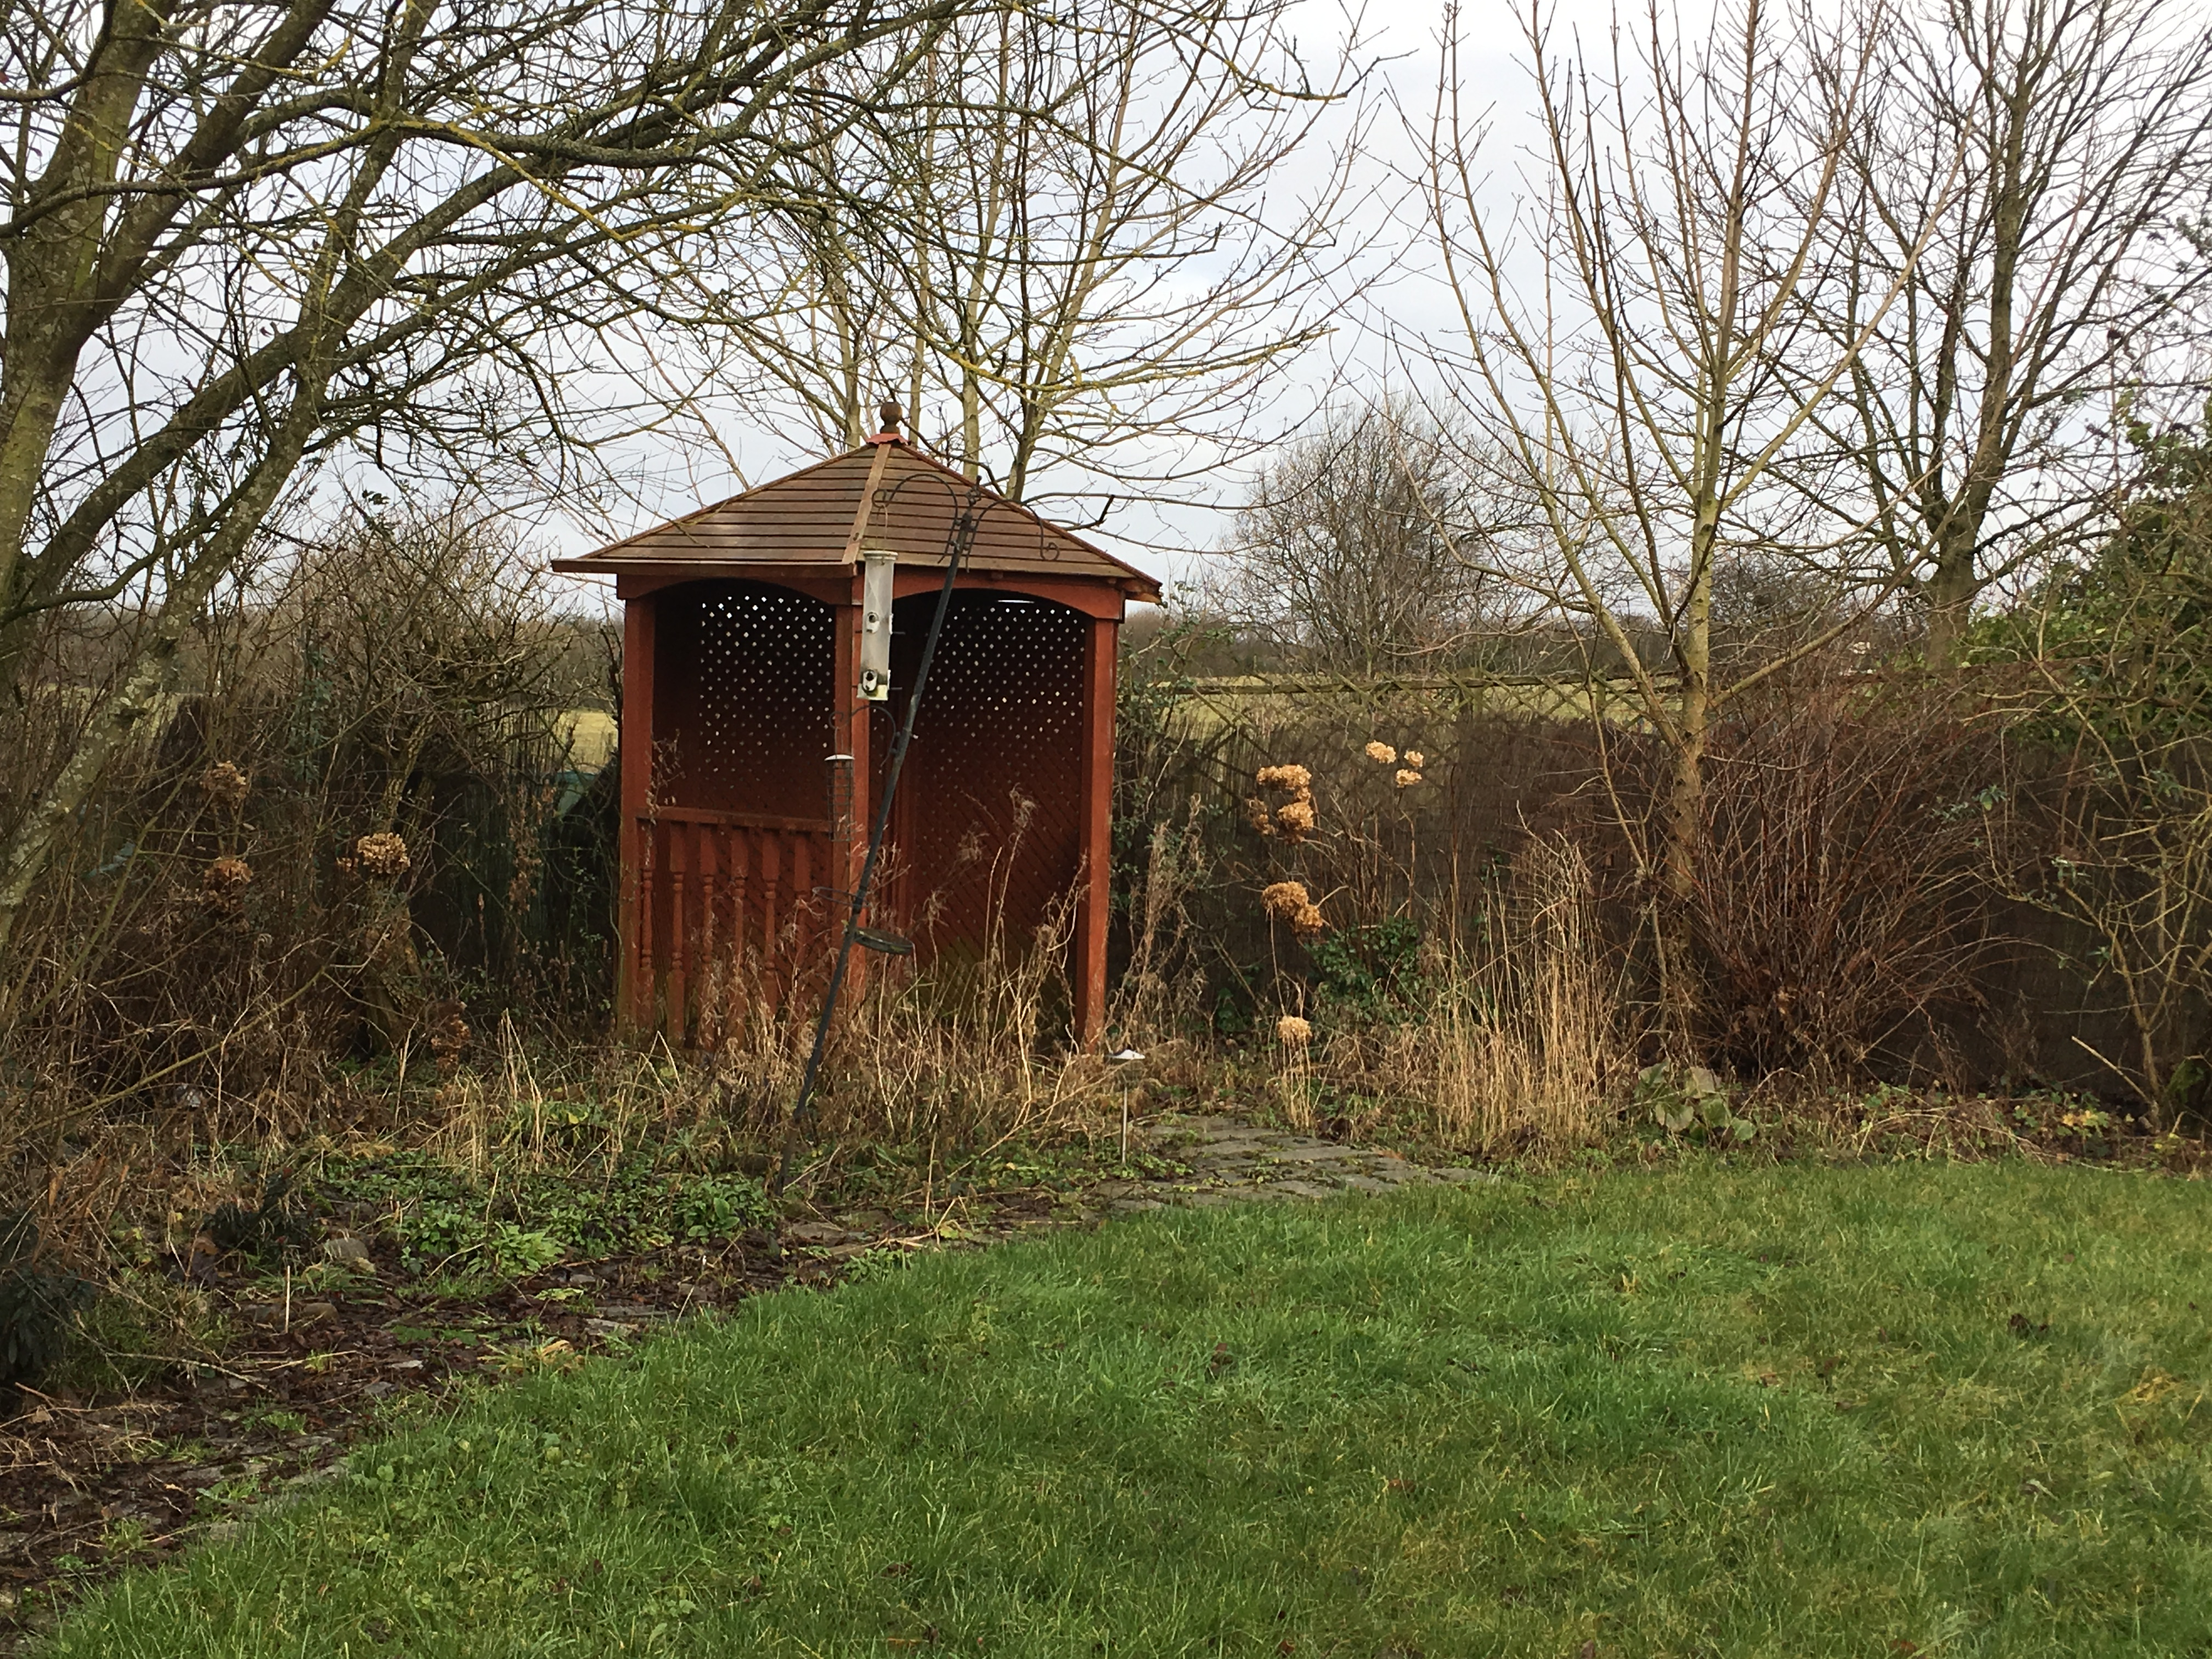 A Certificate of Lawful Development achieved for a garden that had been extended into the Green Belt